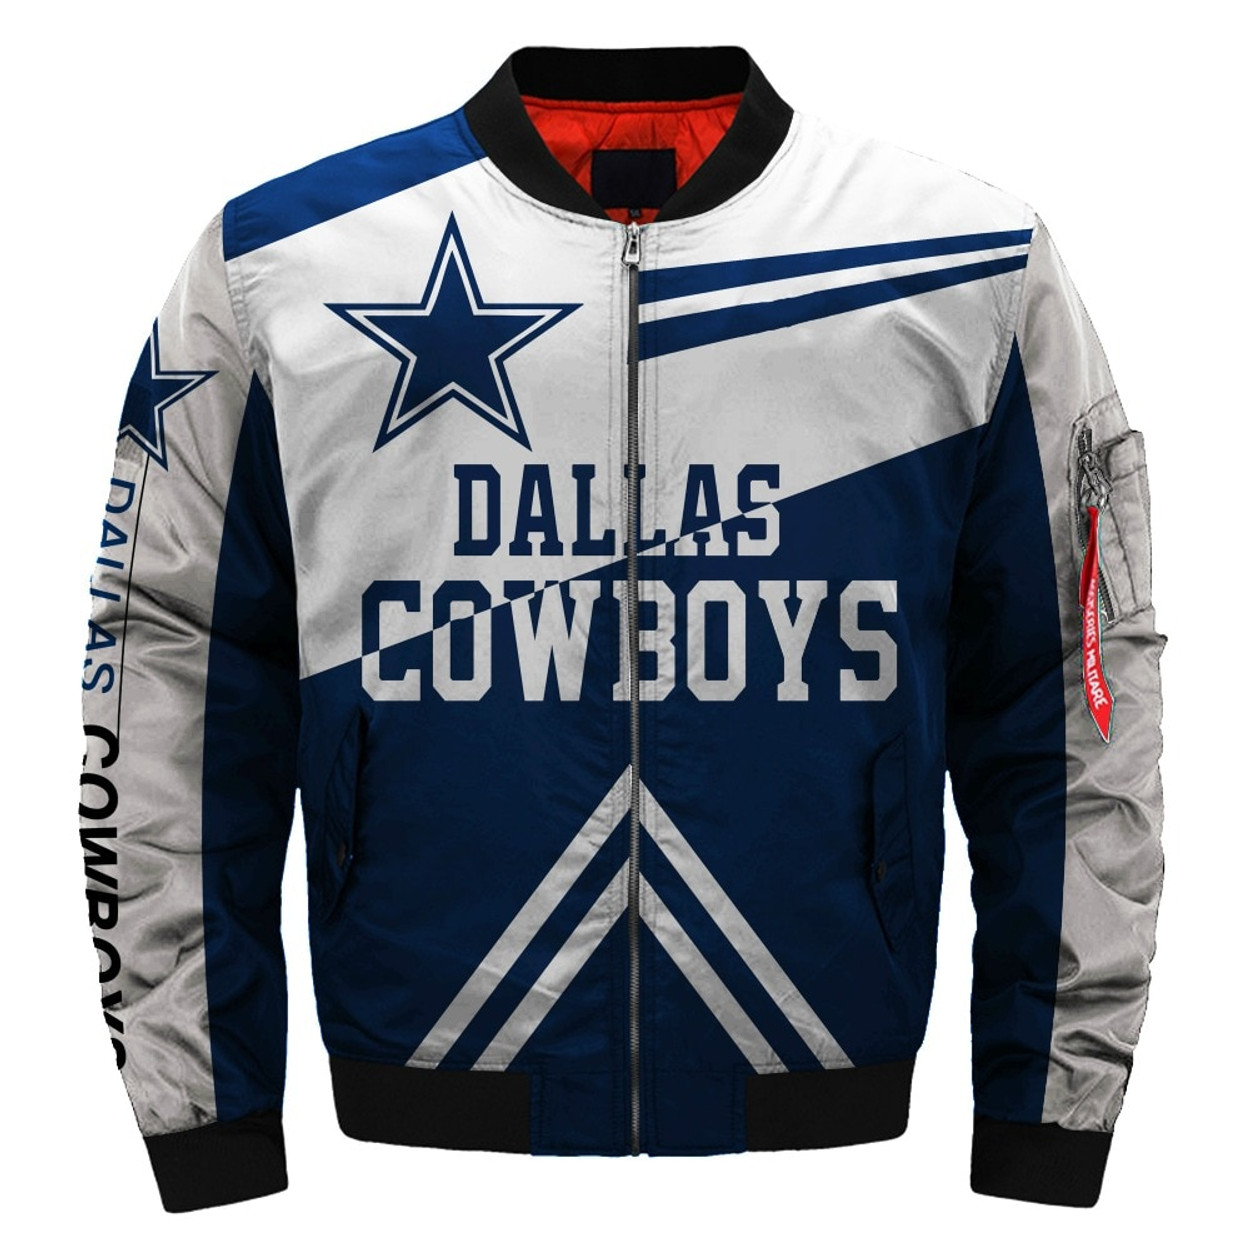 (OFFICIALLY-LICENSED-N.F.L.DALLAS-COWBOYS-JACKETS CLASSIC-COWBOYS-TEAM-COLORS    OFFICIAL-COWBOYS-LOGOS ... 5f6556a22d91